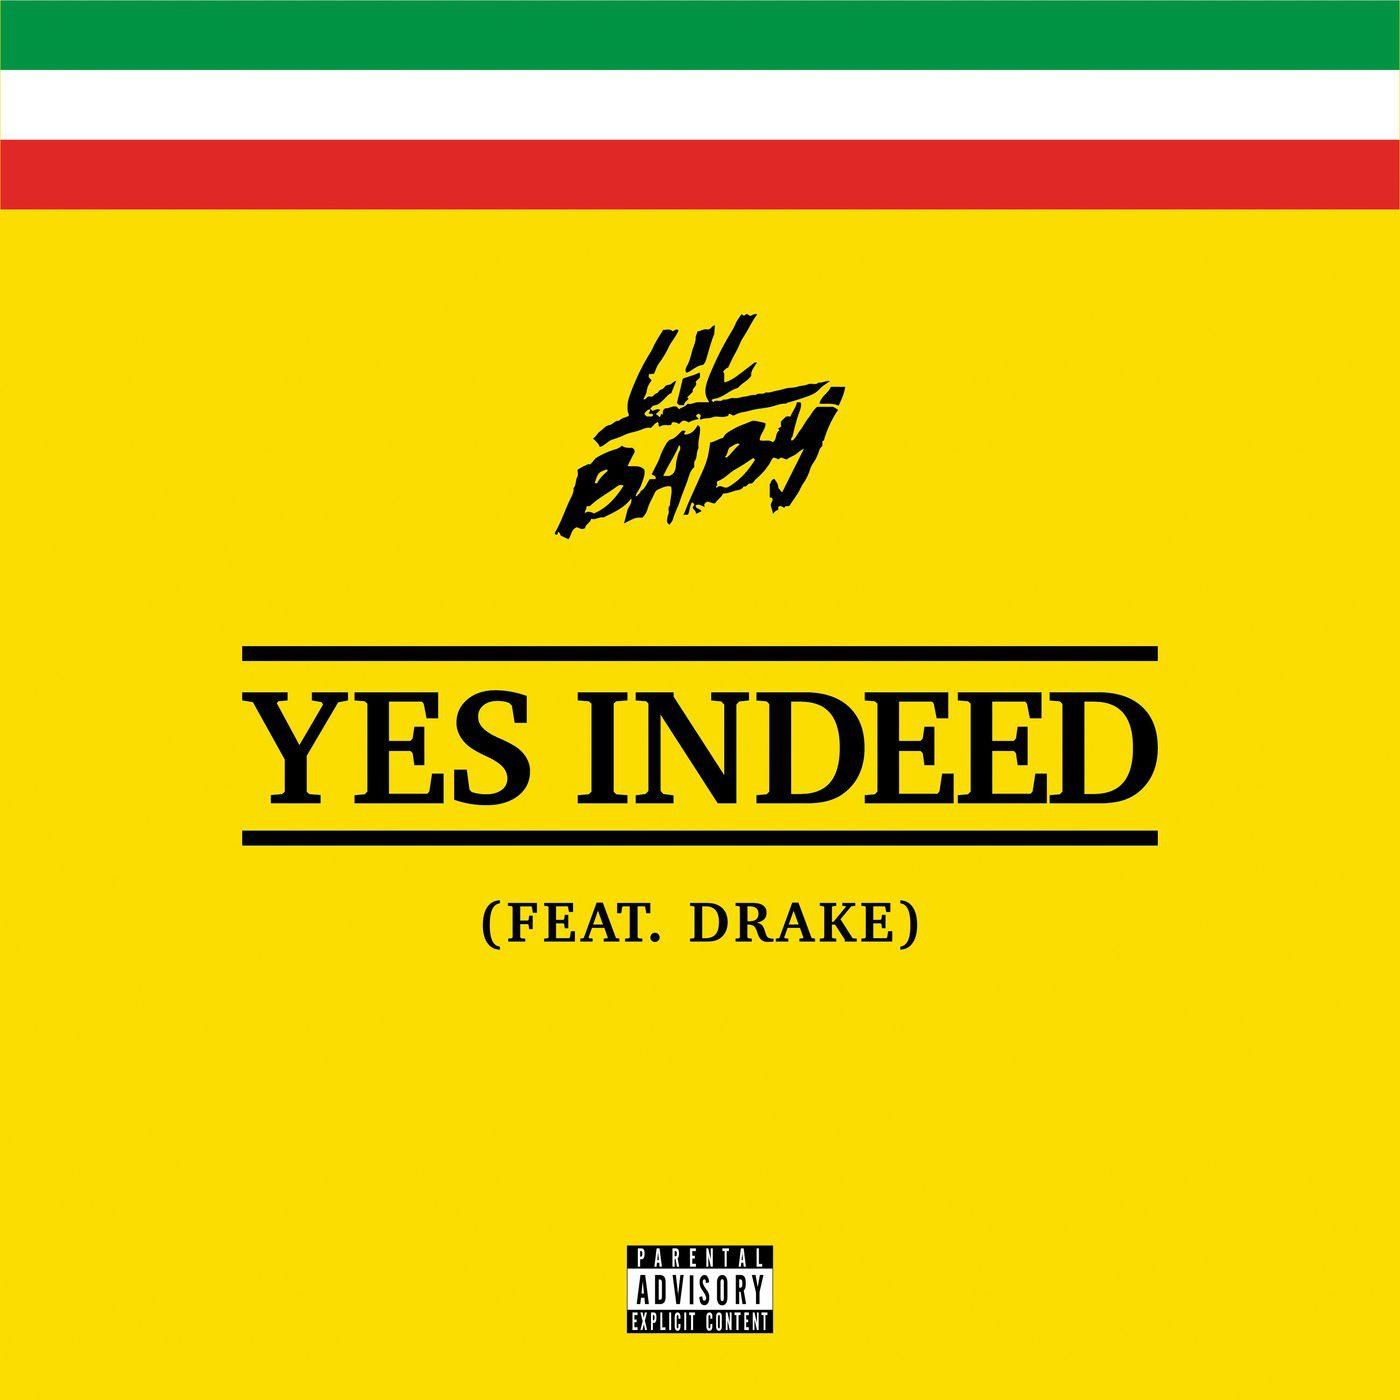 """Listen to @lilbaby4PF and @Drake  team-up on """"Yes Indeed."""" https://t.co/O0UAOsdcT9 https://t.co/qP9Rt0IjYD"""